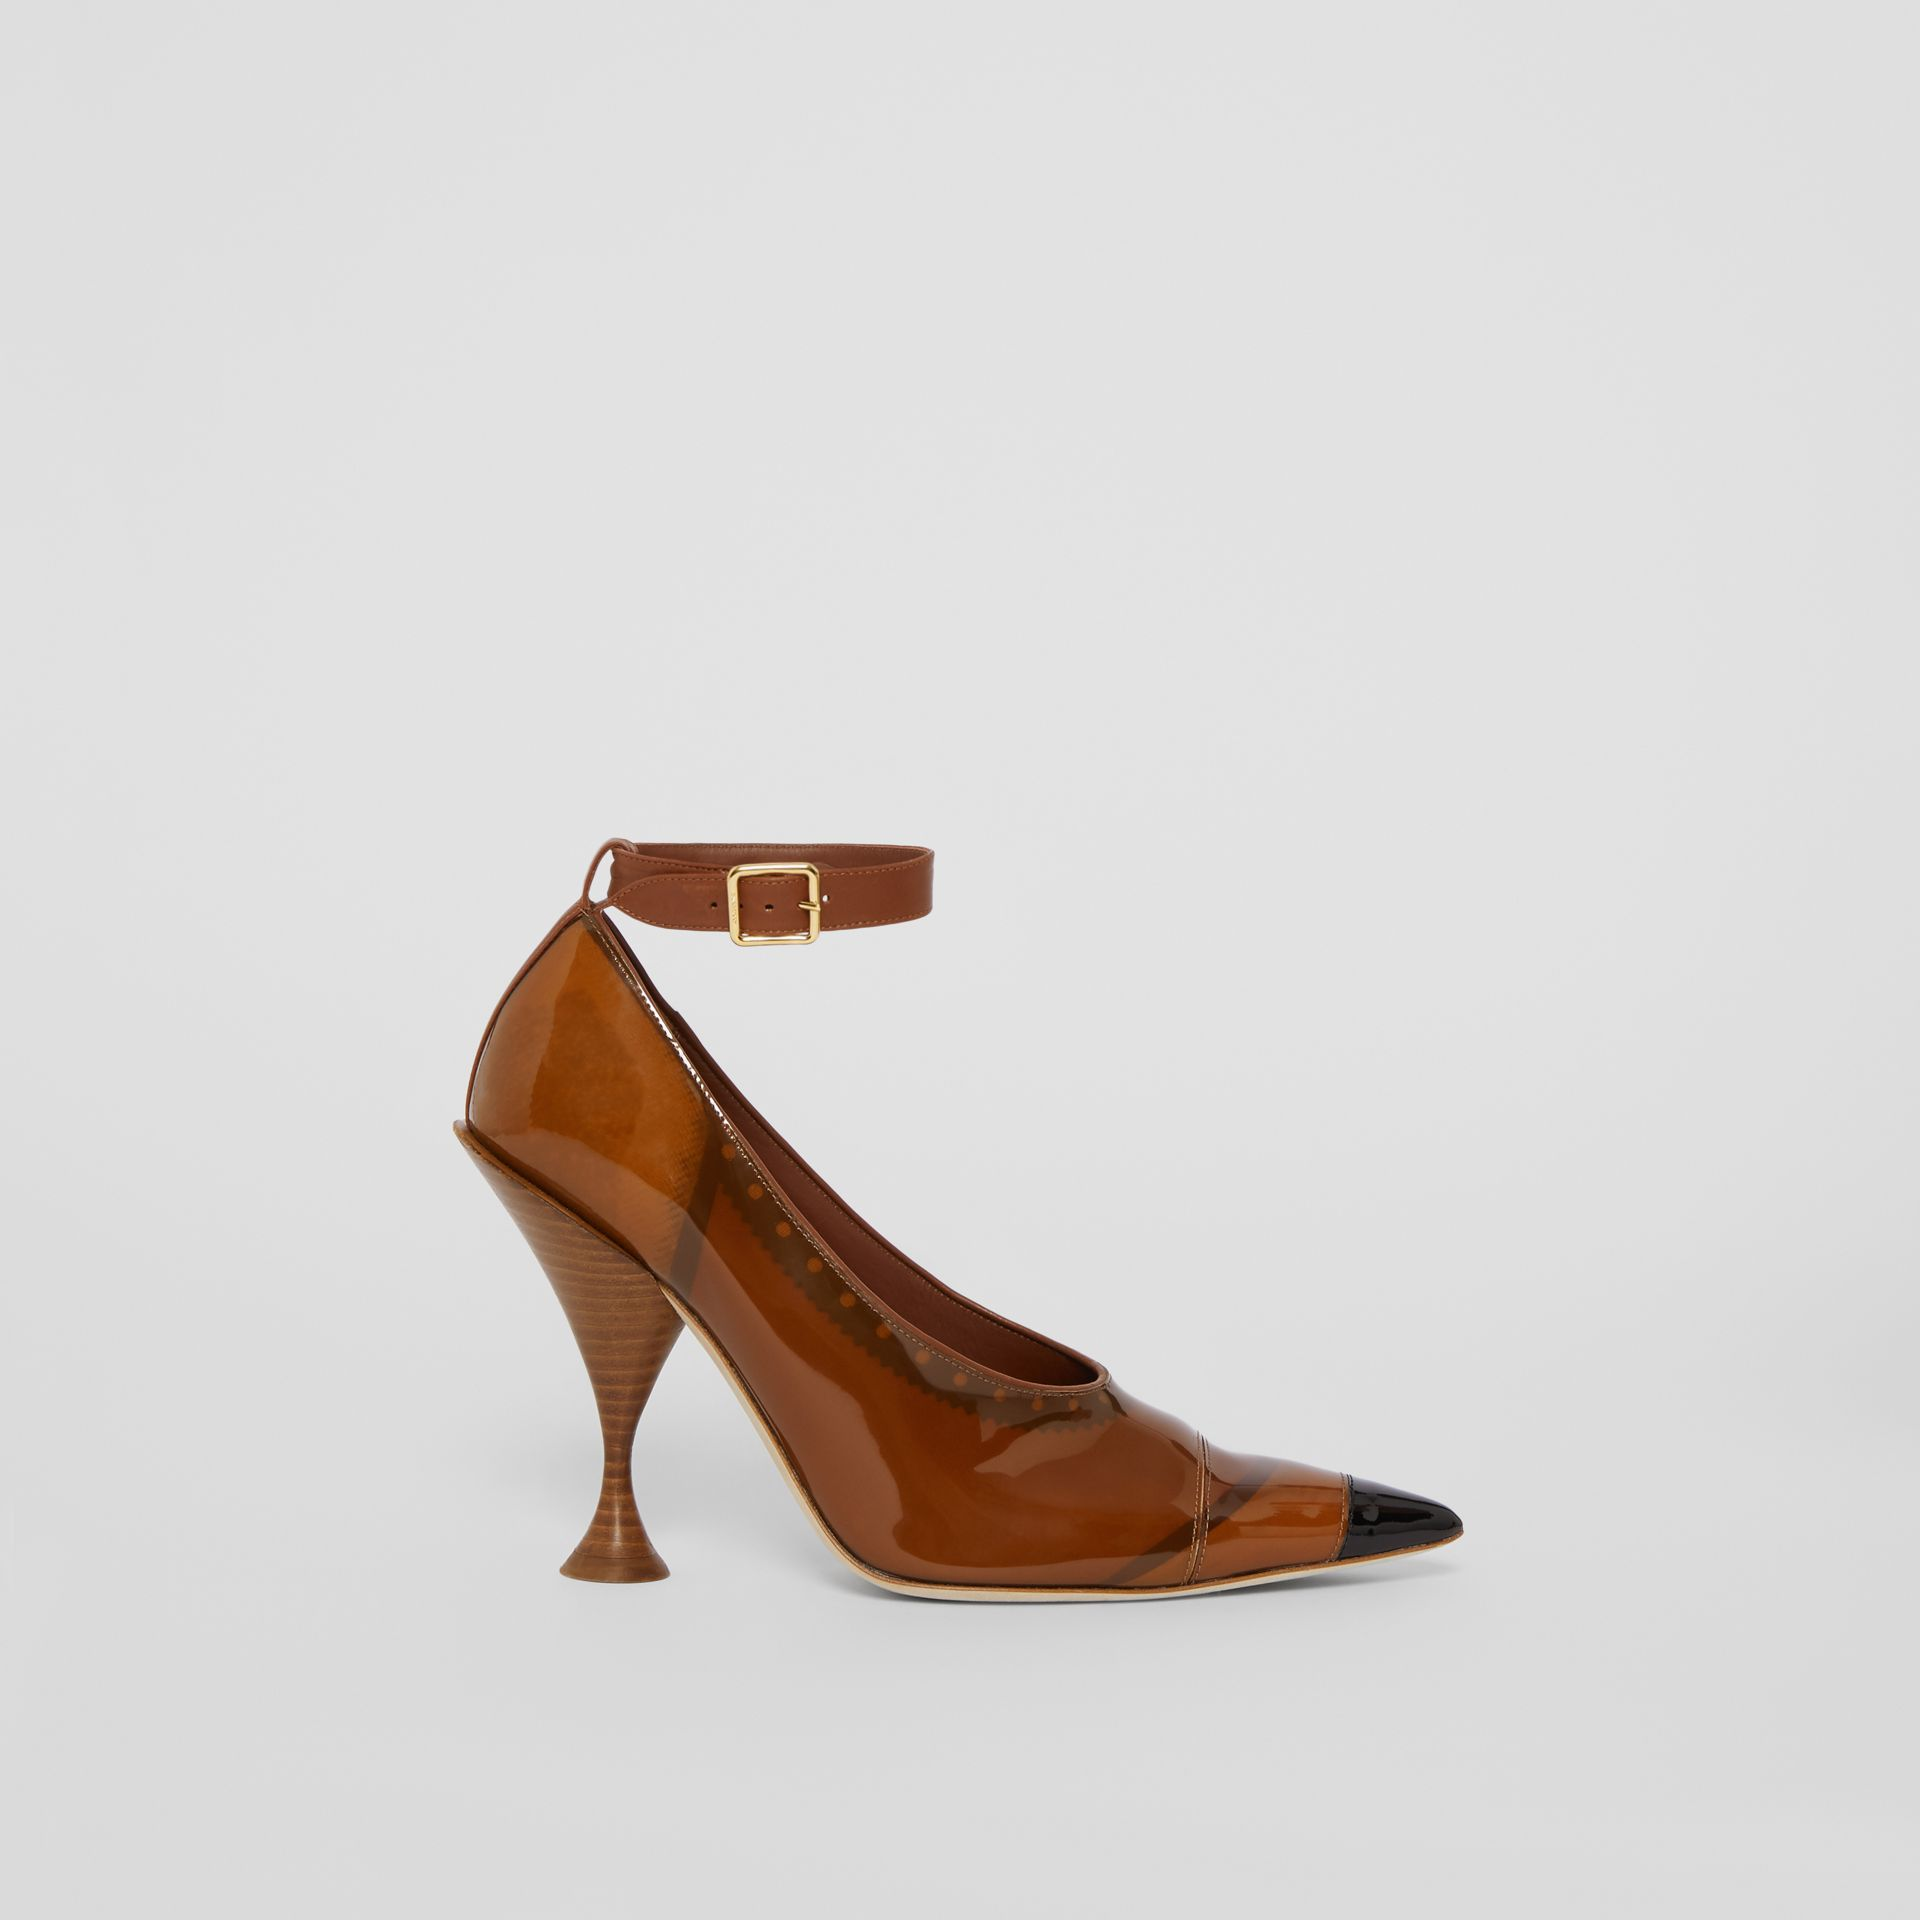 Vinyl and Leather Point-toe Pumps in Malt Brown - Women | Burberry United Kingdom - gallery image 5